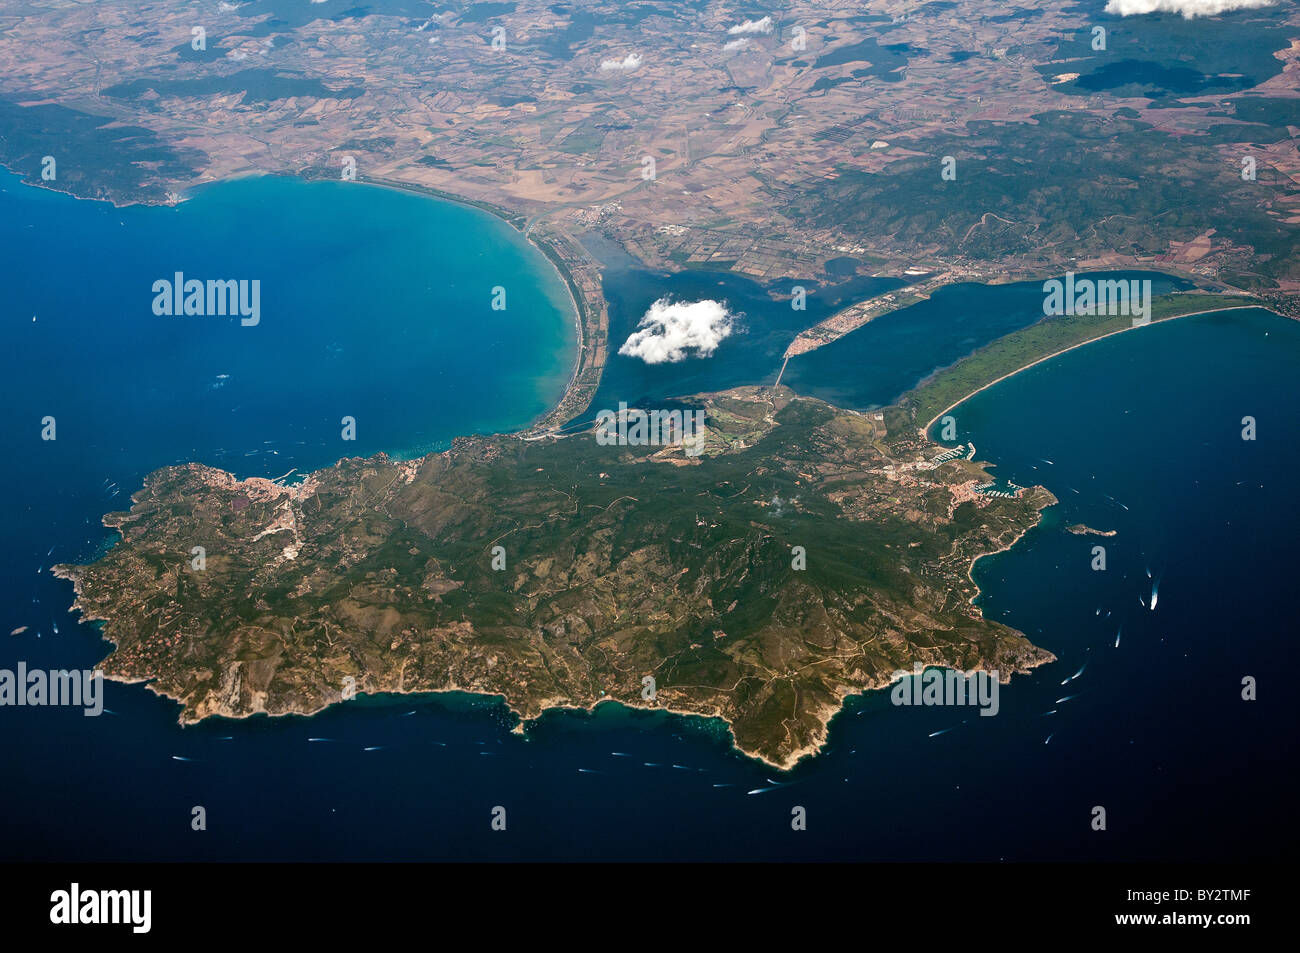 Aerial view of Mount Argentario peninsula joined to the Tuscany's coast by way of three thin strips of land, - Stock Image